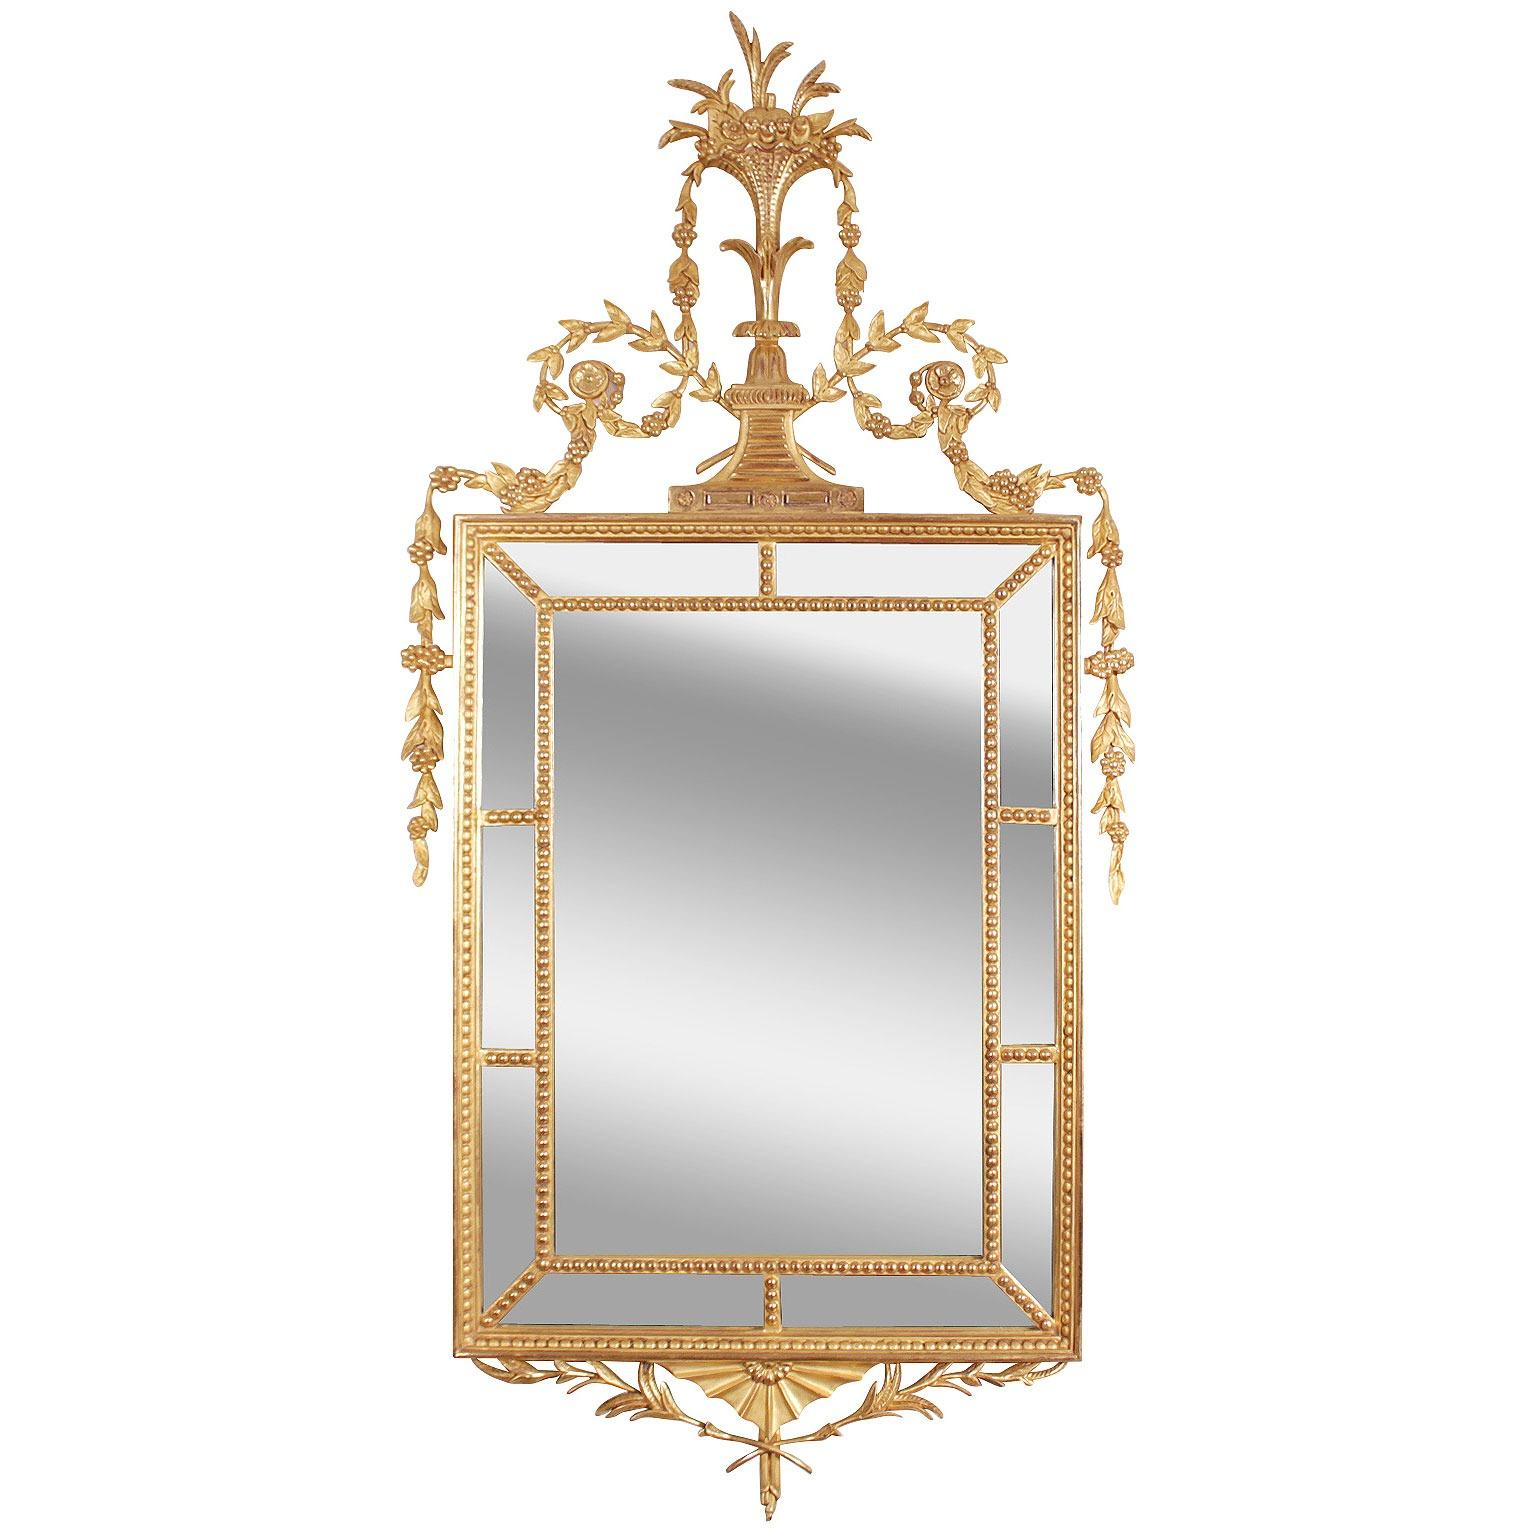 Hepplewhite style water gilded mirror in real gold leaf